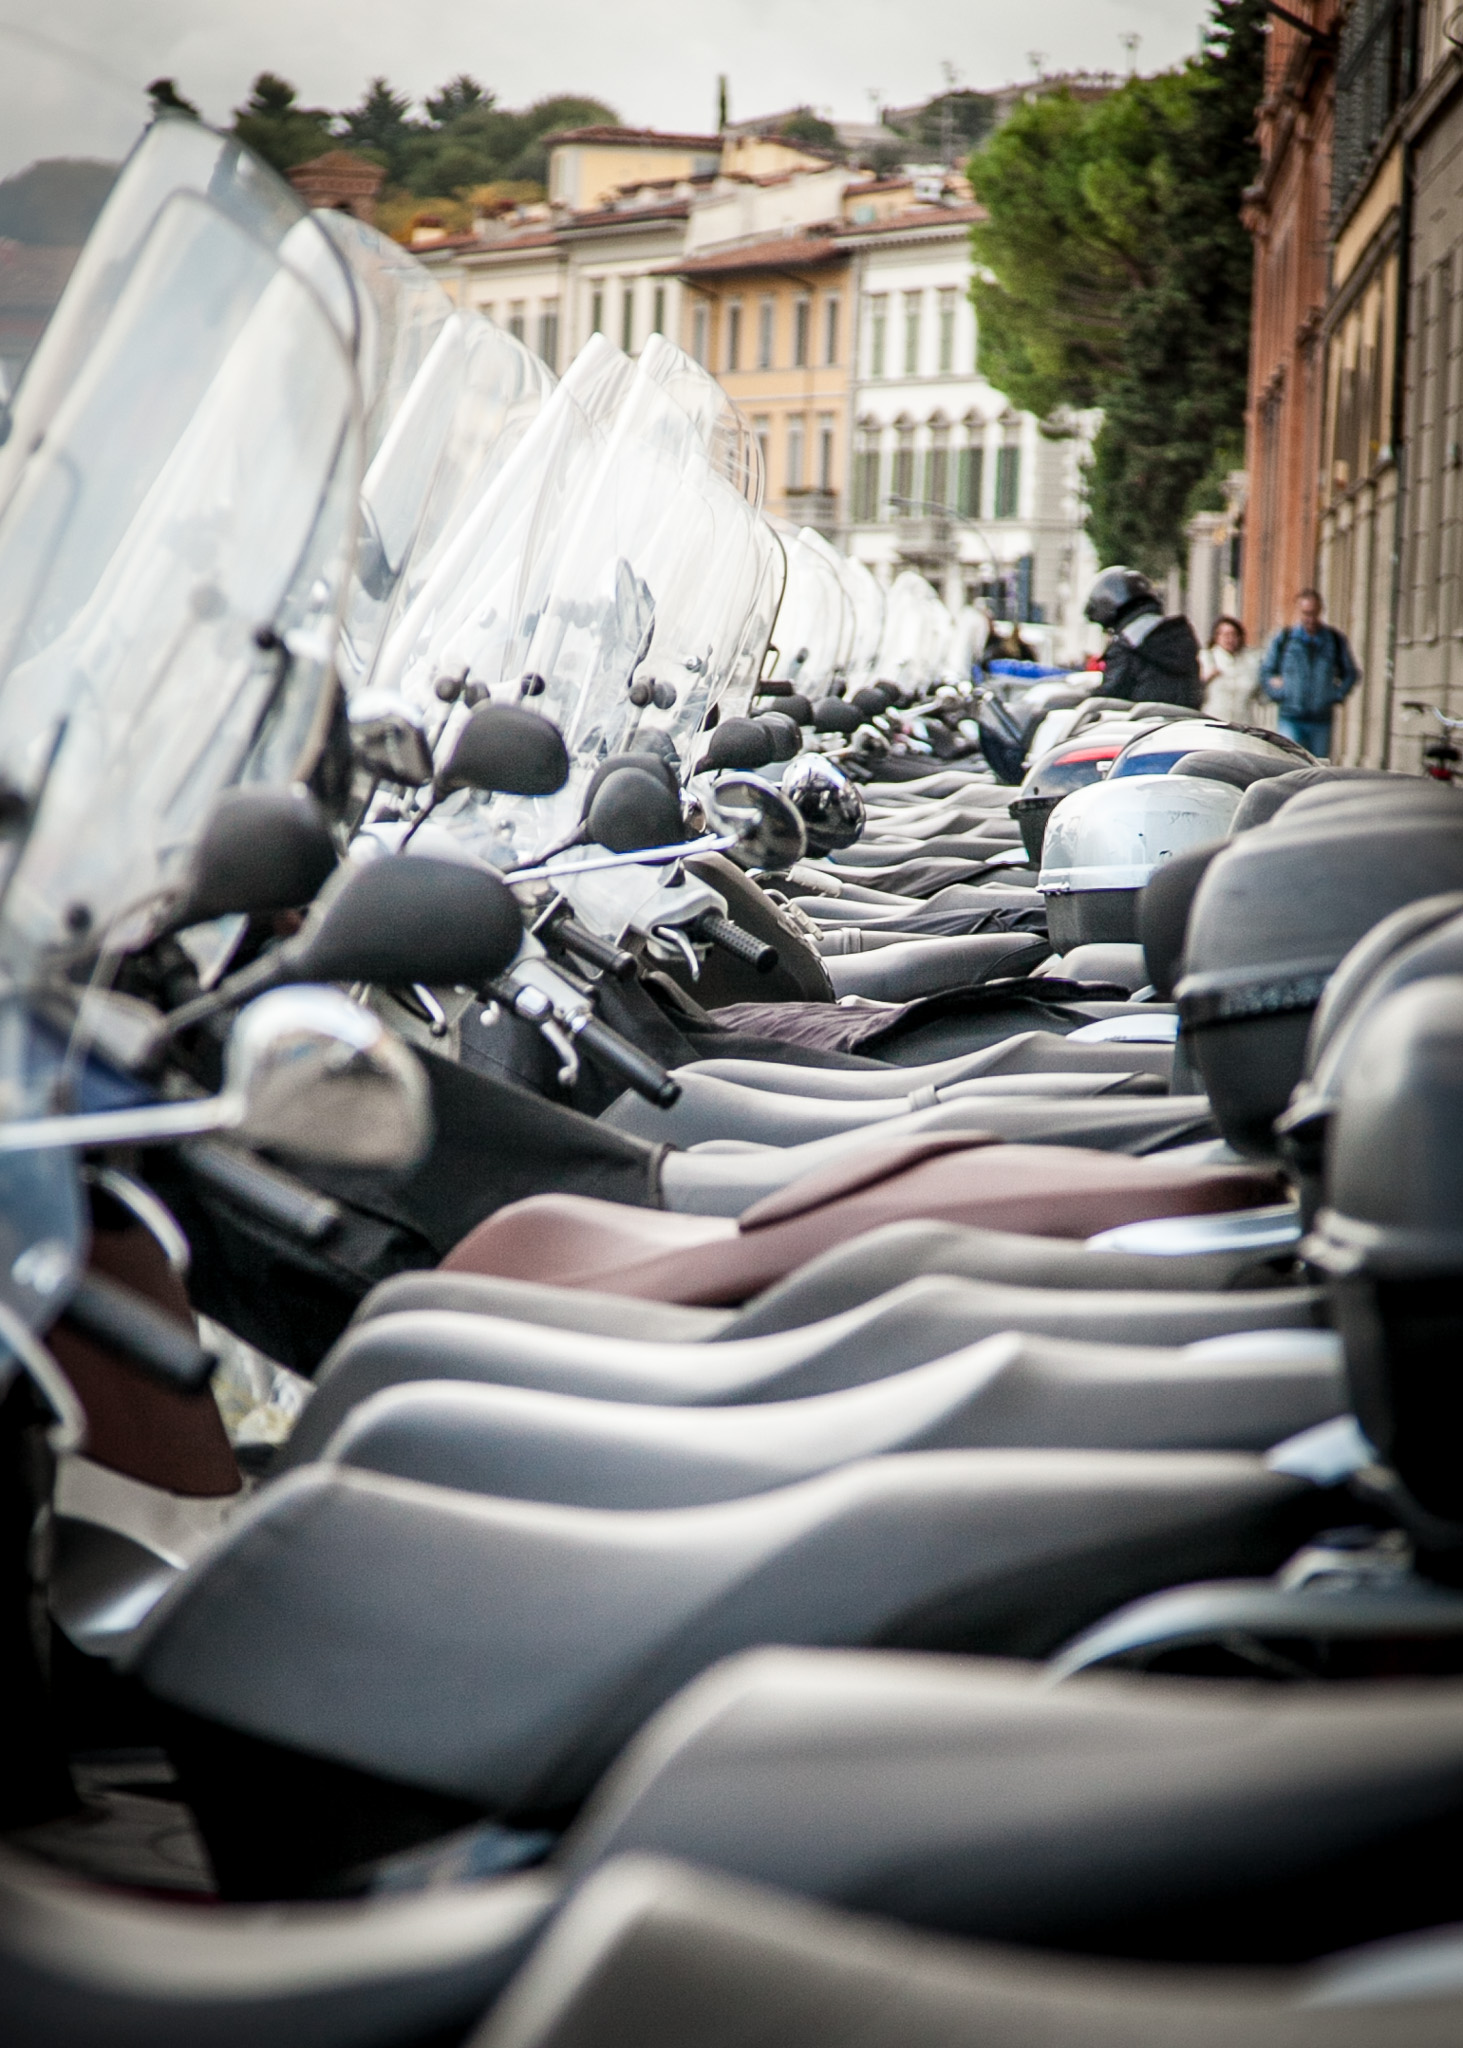 There are millions and millions of motor bikes, scooters and mopeds in Florence.....these are parked next the river Arno